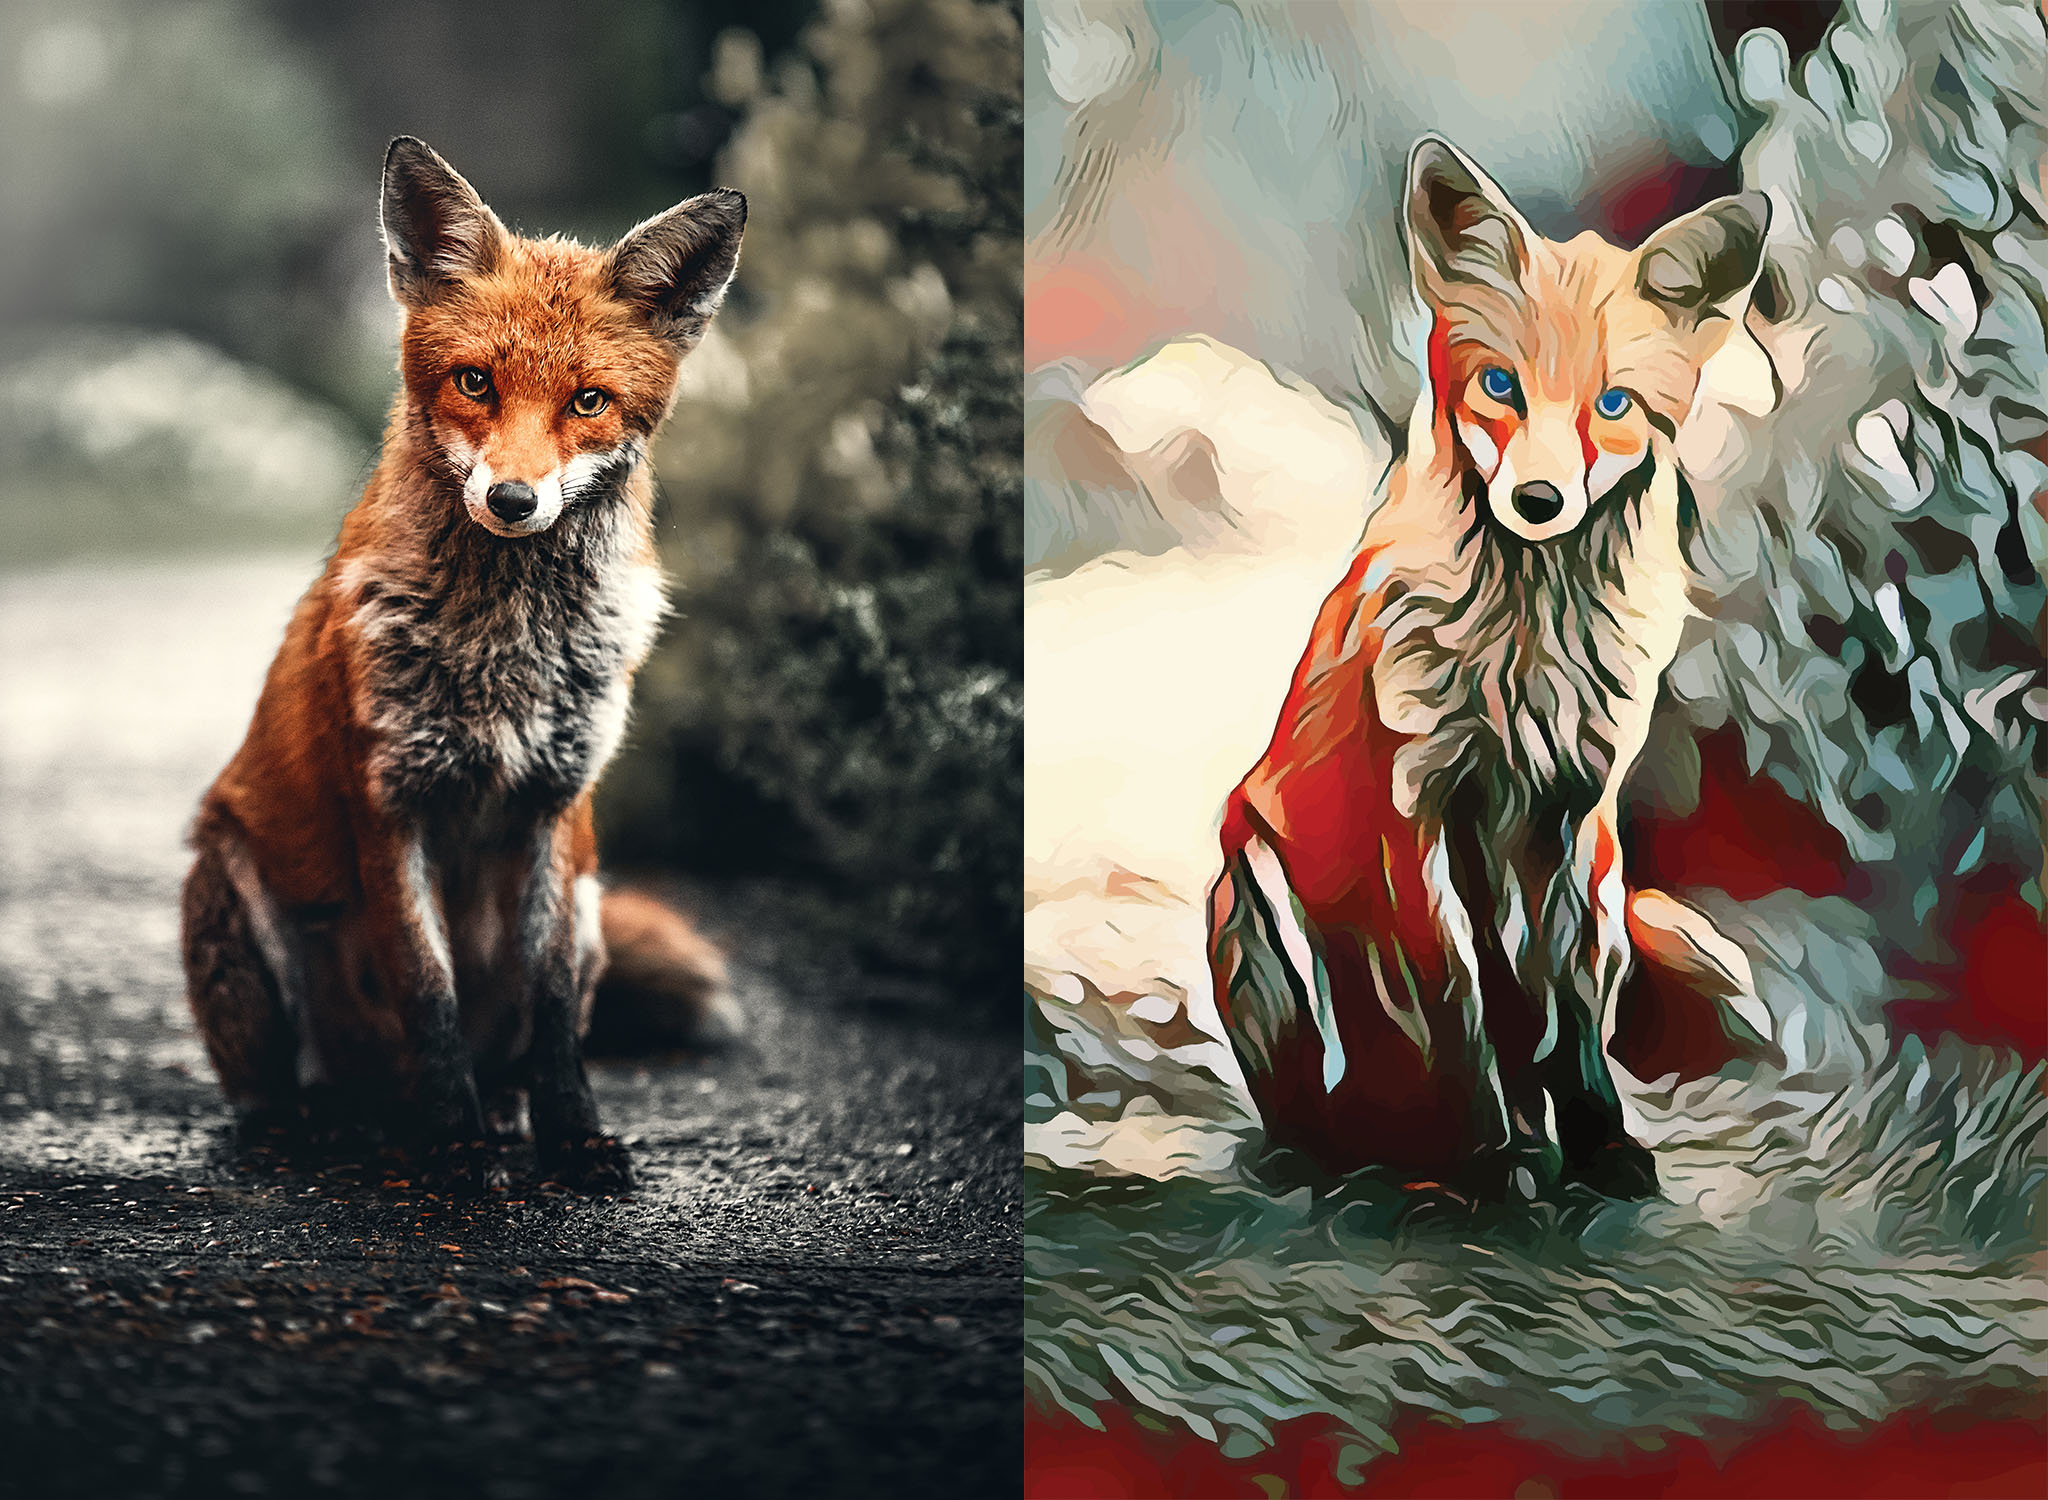 Before and after stylized image of a fox looking into the camera